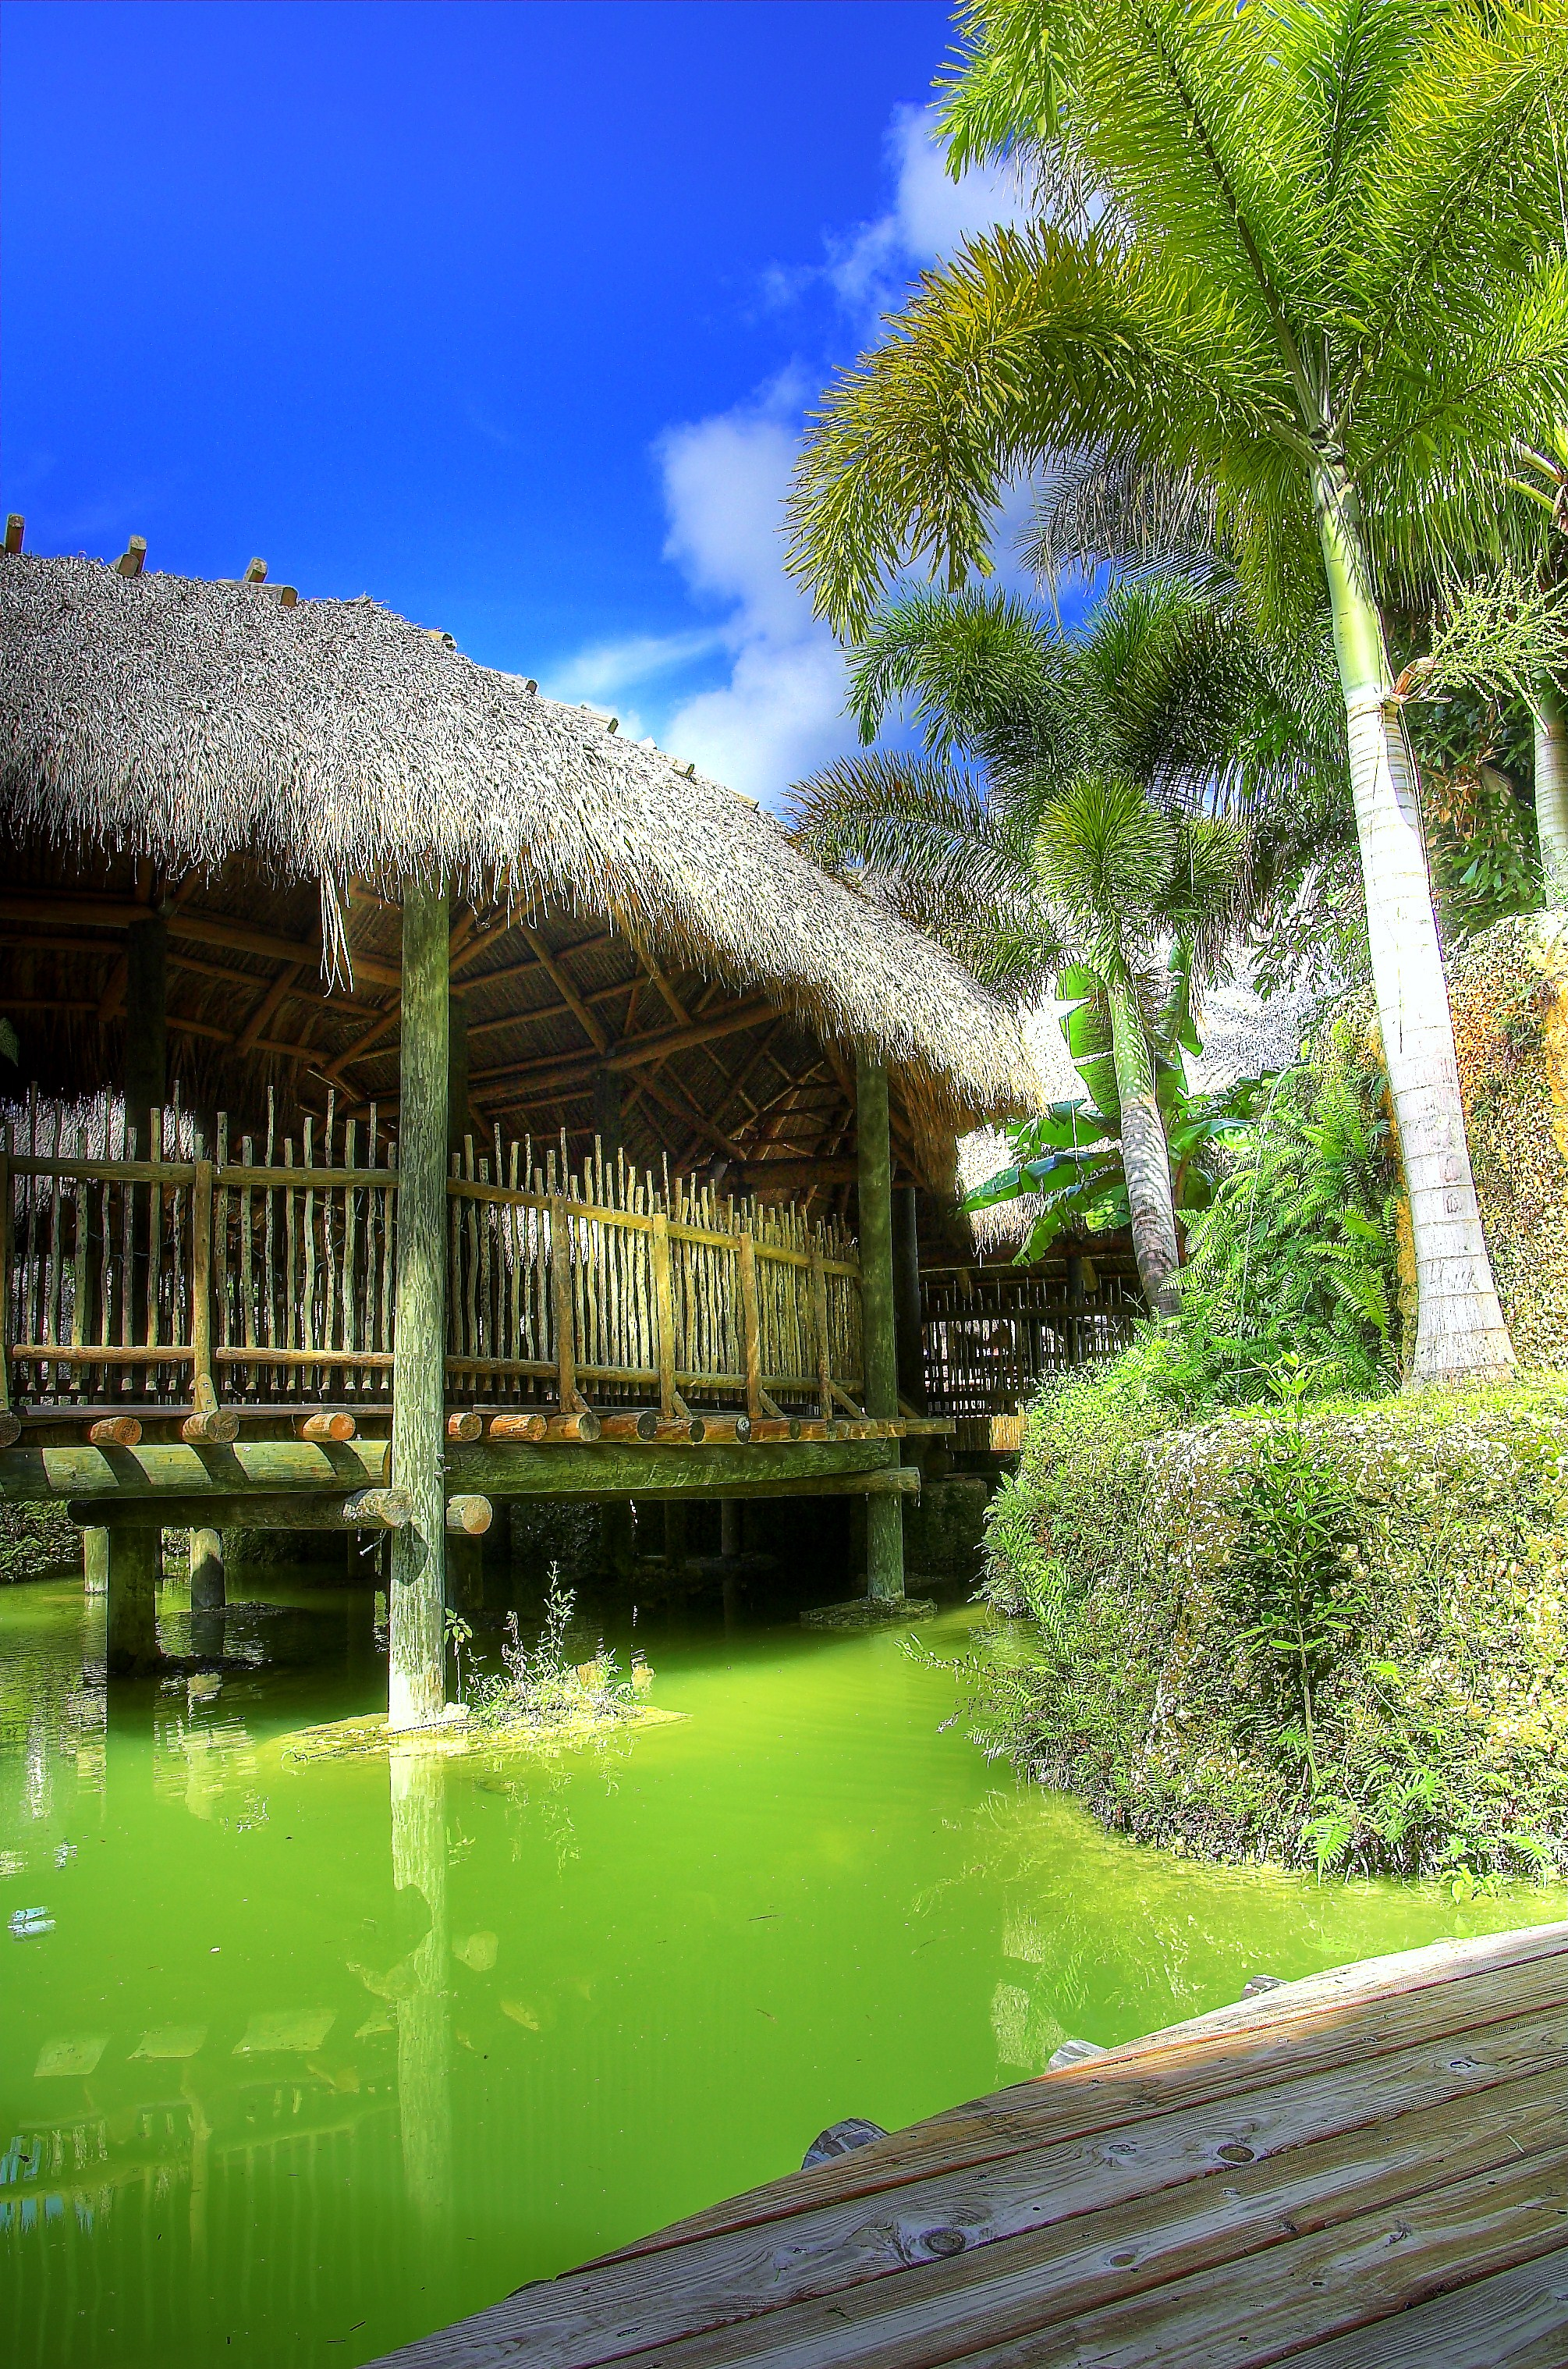 Tiki Huts Over water.